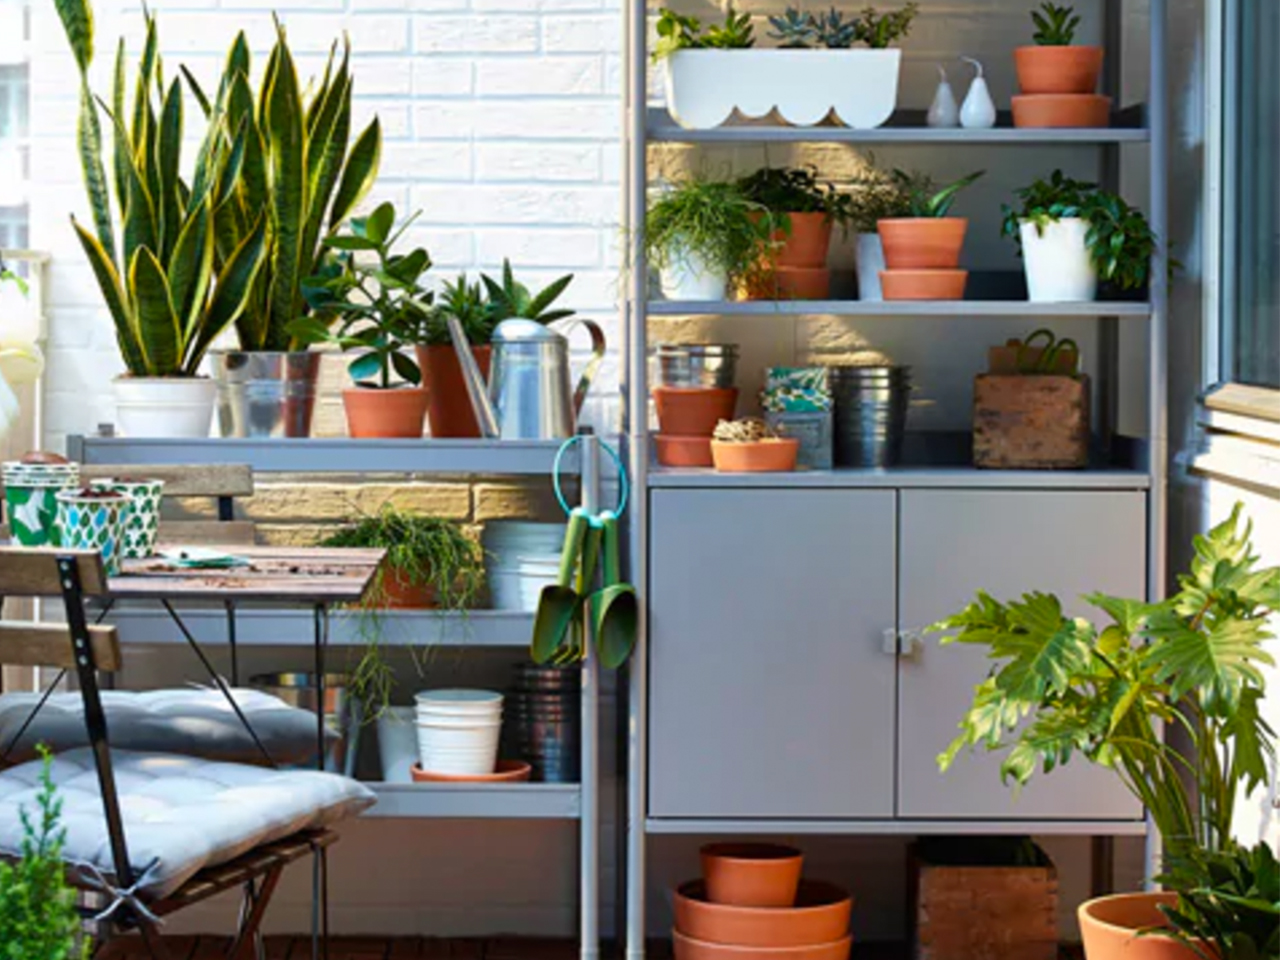 12 Easy Ways To Achieve A Beautiful Balcony Garden  Chatelaine